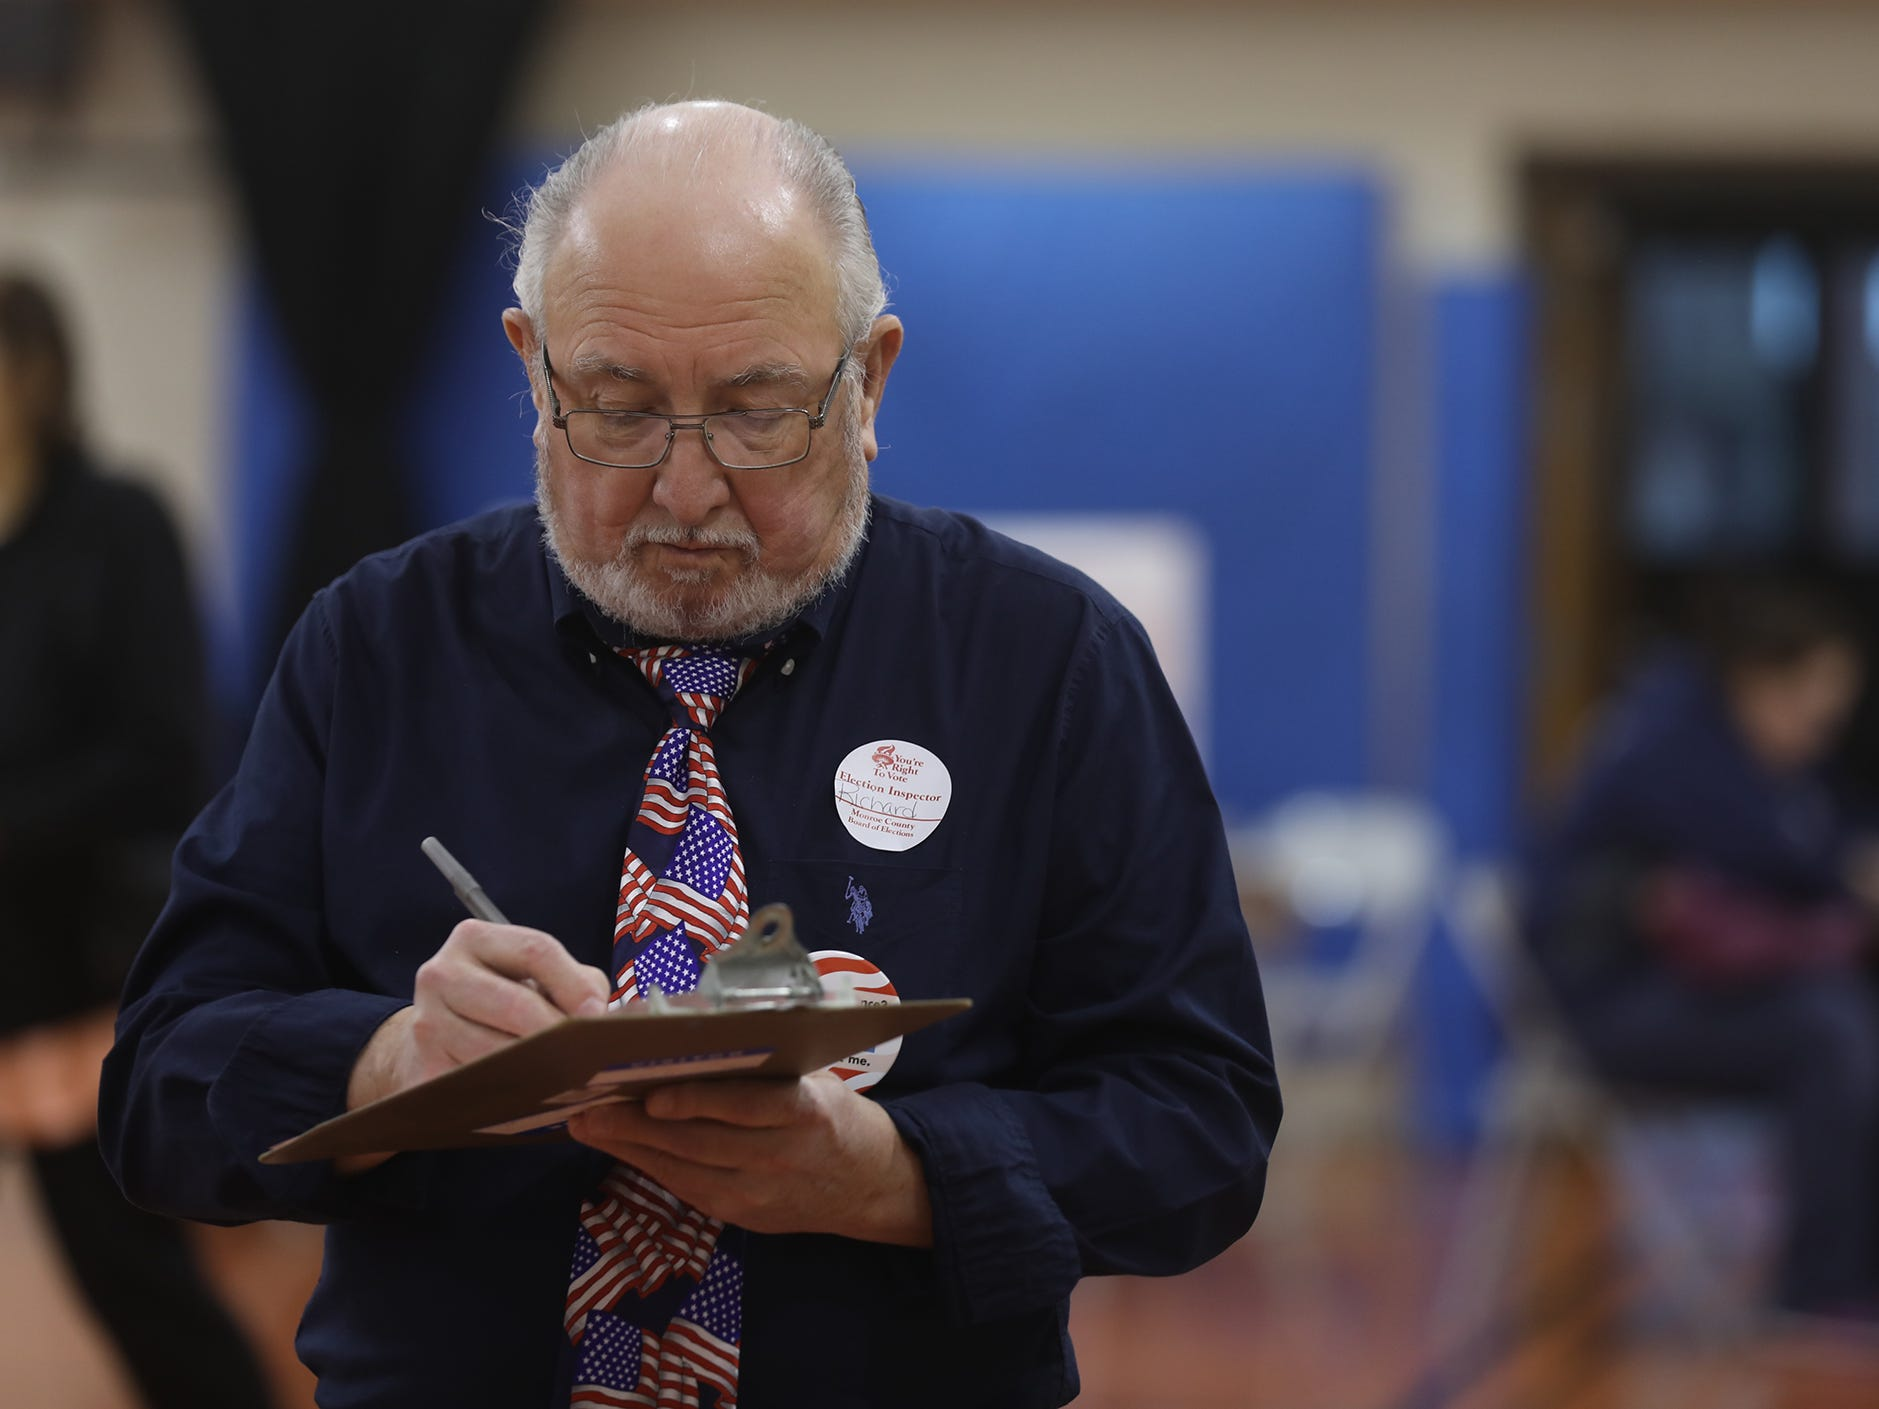 Richard Astifan signs a certificate of service that says he took the oath as part of being an election inspector and is working on Election Day, Nov. 6, 2018.  Astifan was one of several workers at the United Methodist Church in Webster.